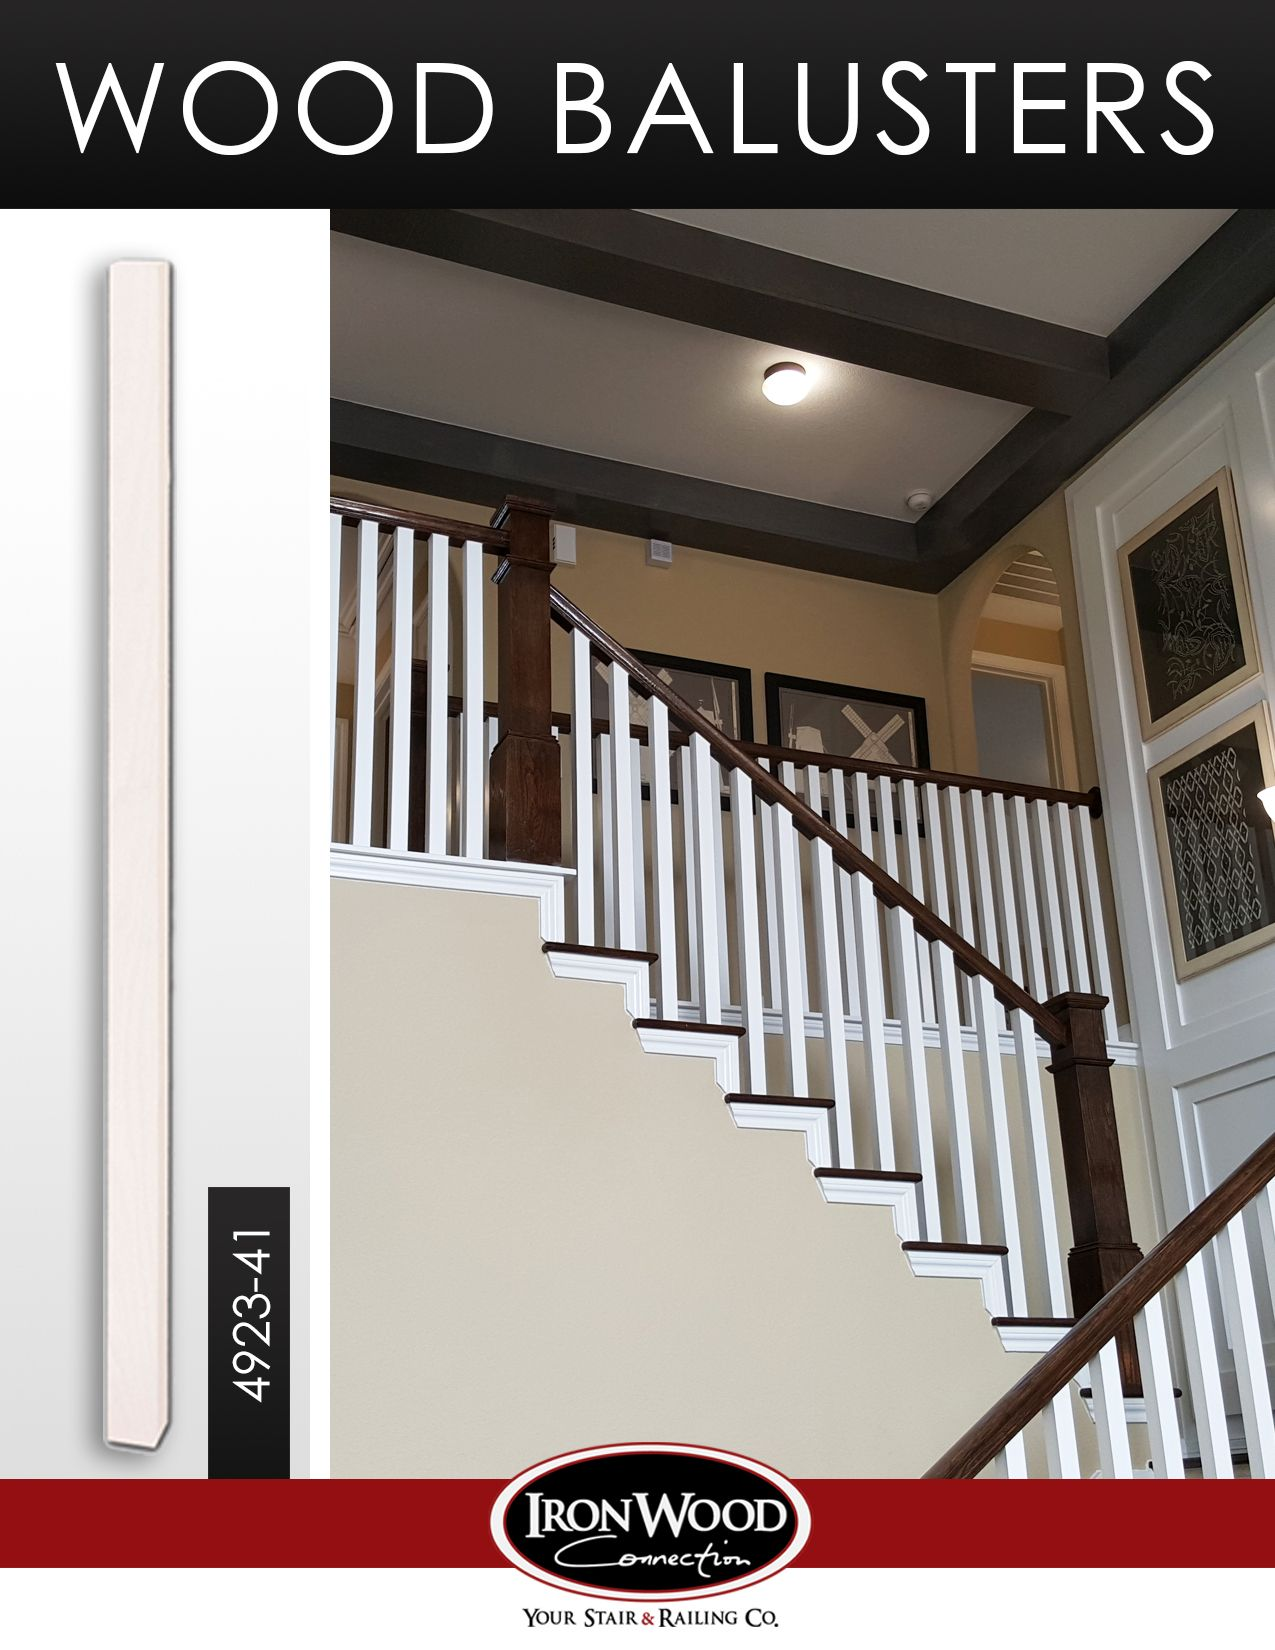 Best Wood Balusters Wood Balusters Staircase Remodel Stair 640 x 480